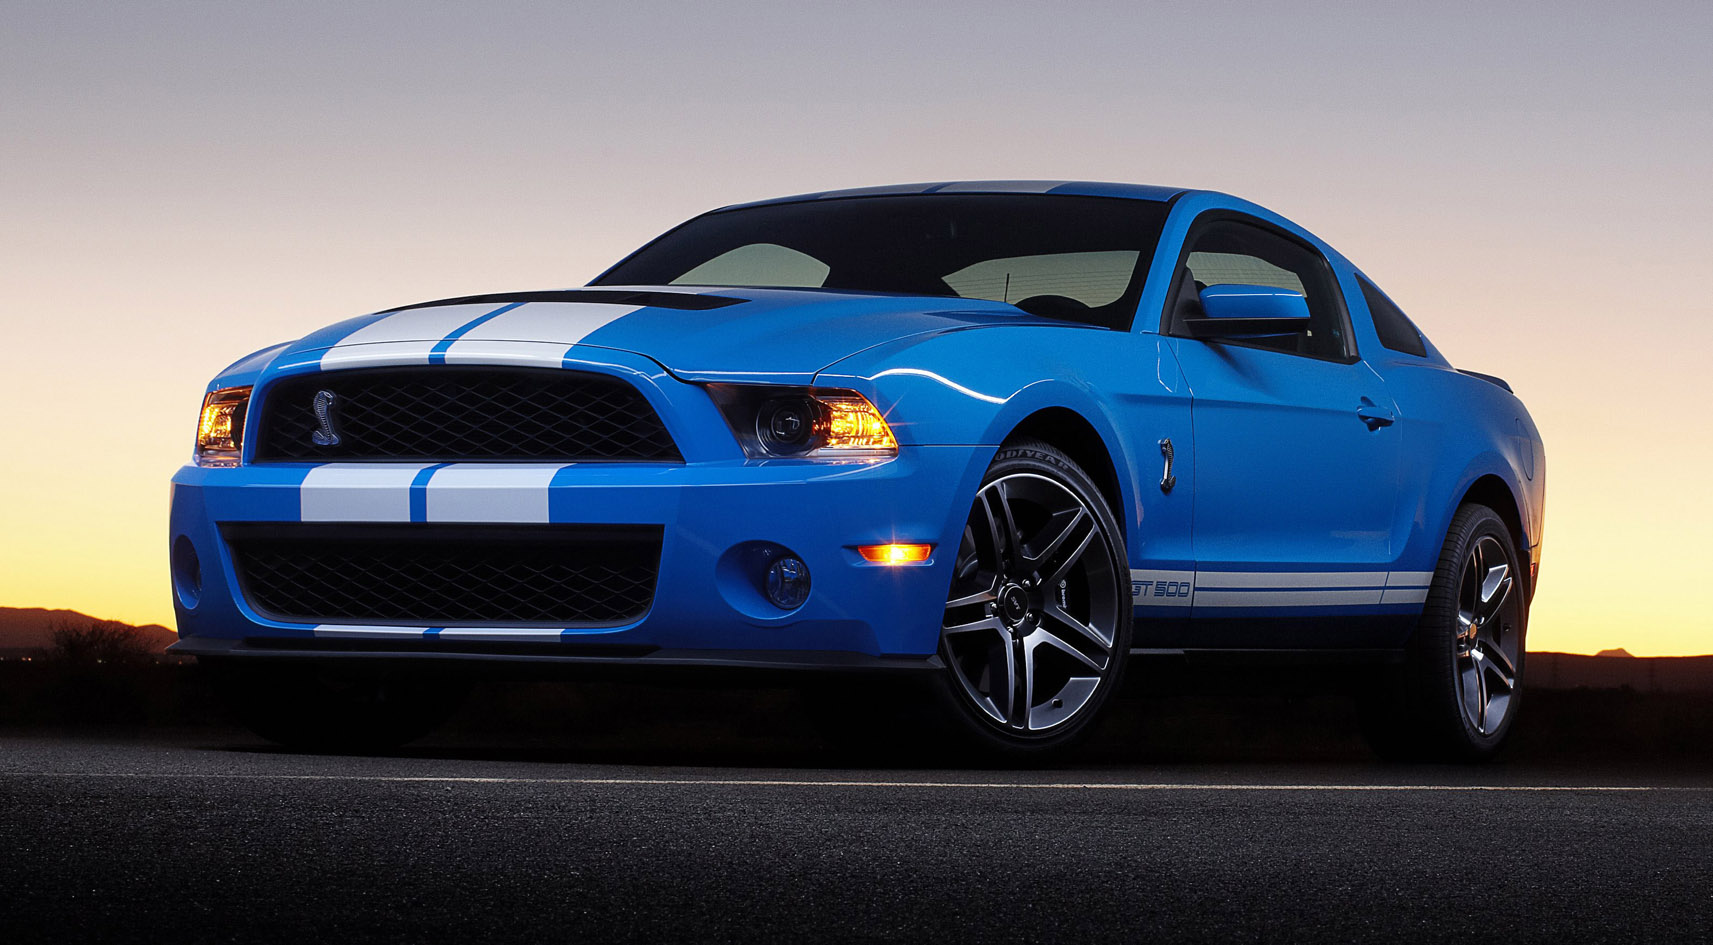 2010 Ford Shelby Gt500 #3